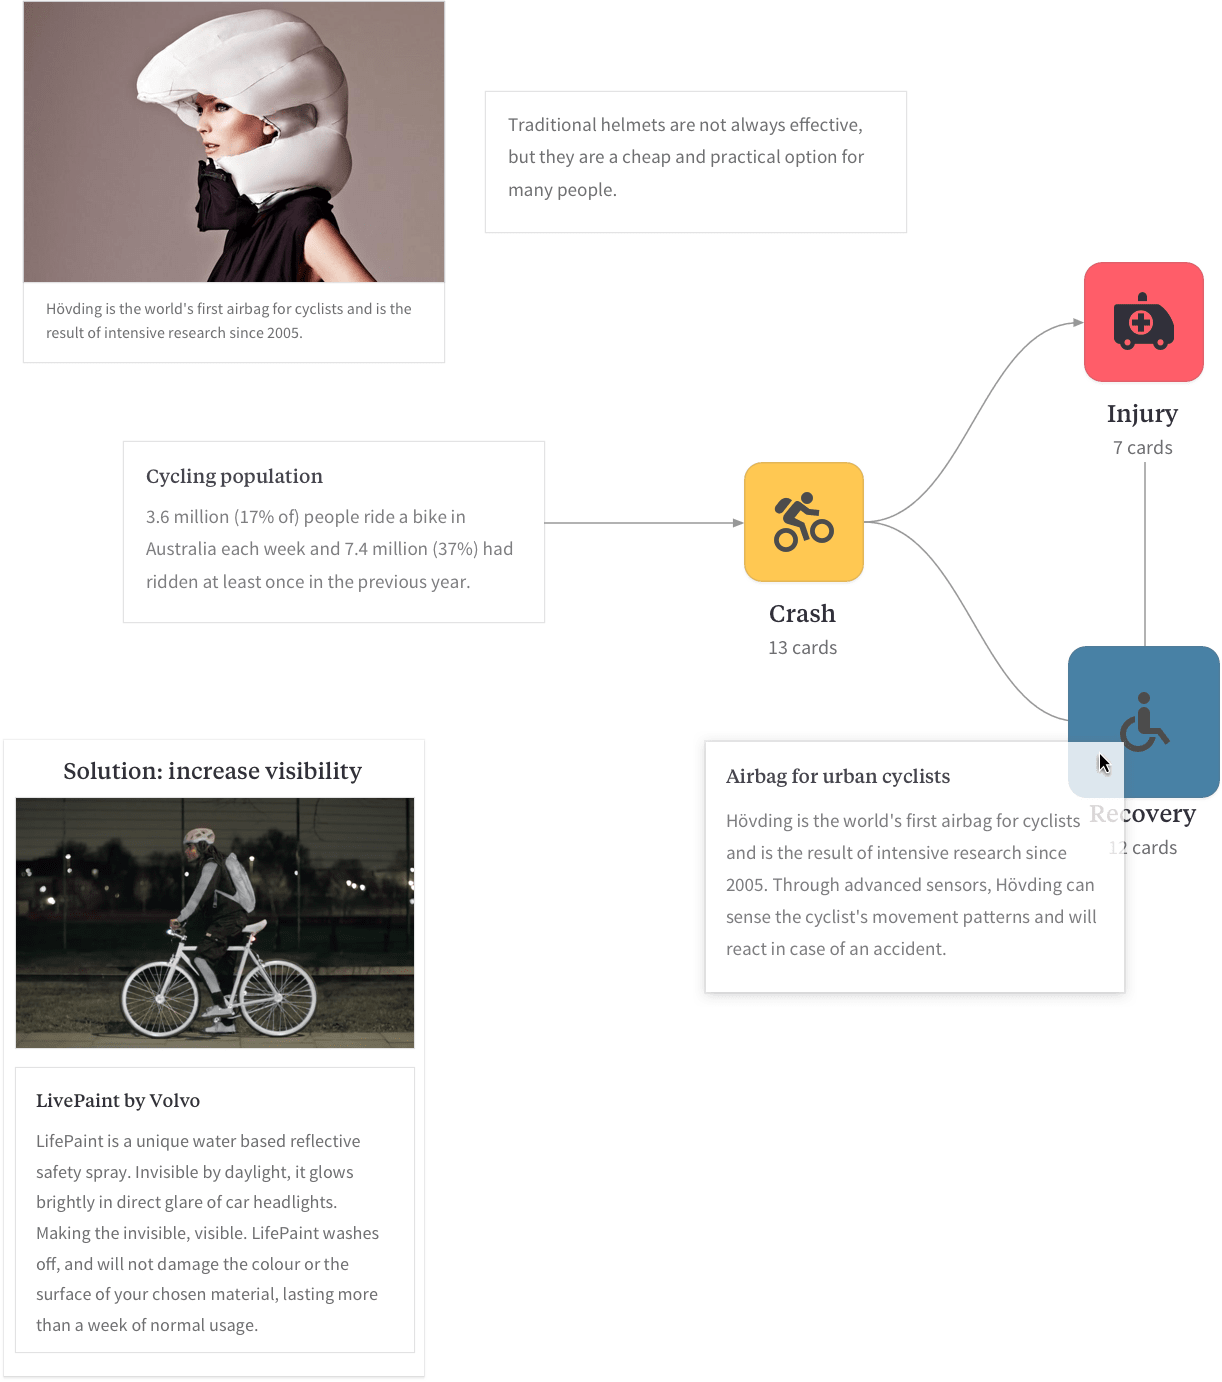 Create a user journey flow diagram with images, text, and lines.